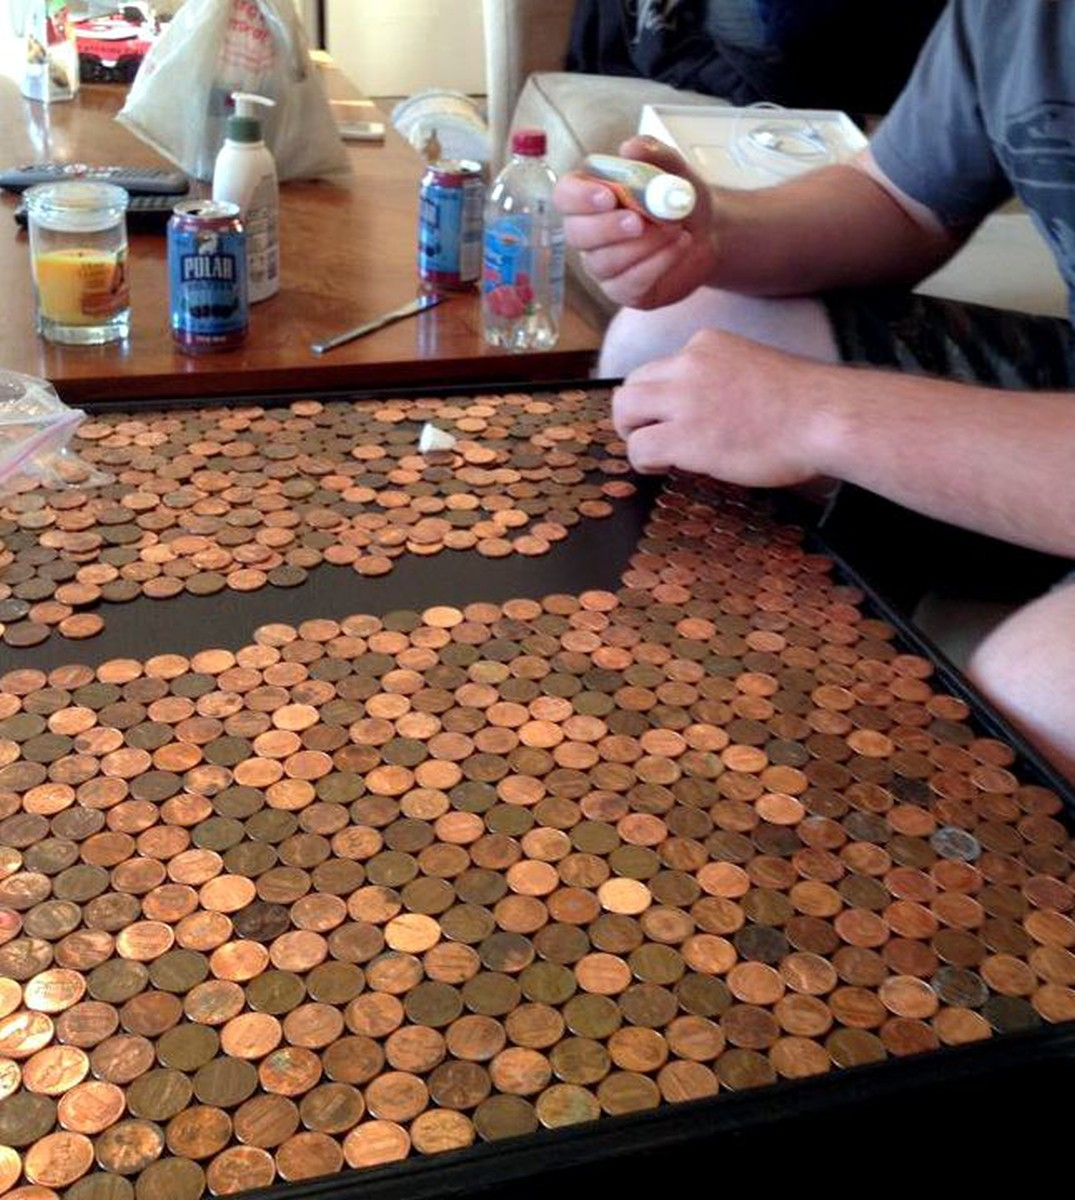 We Glued Some Pennies With Super Glue And Some With Gorilla Glue. If I Were  To Do It All Over Again, I Would NOT Use Gorilla Glue.